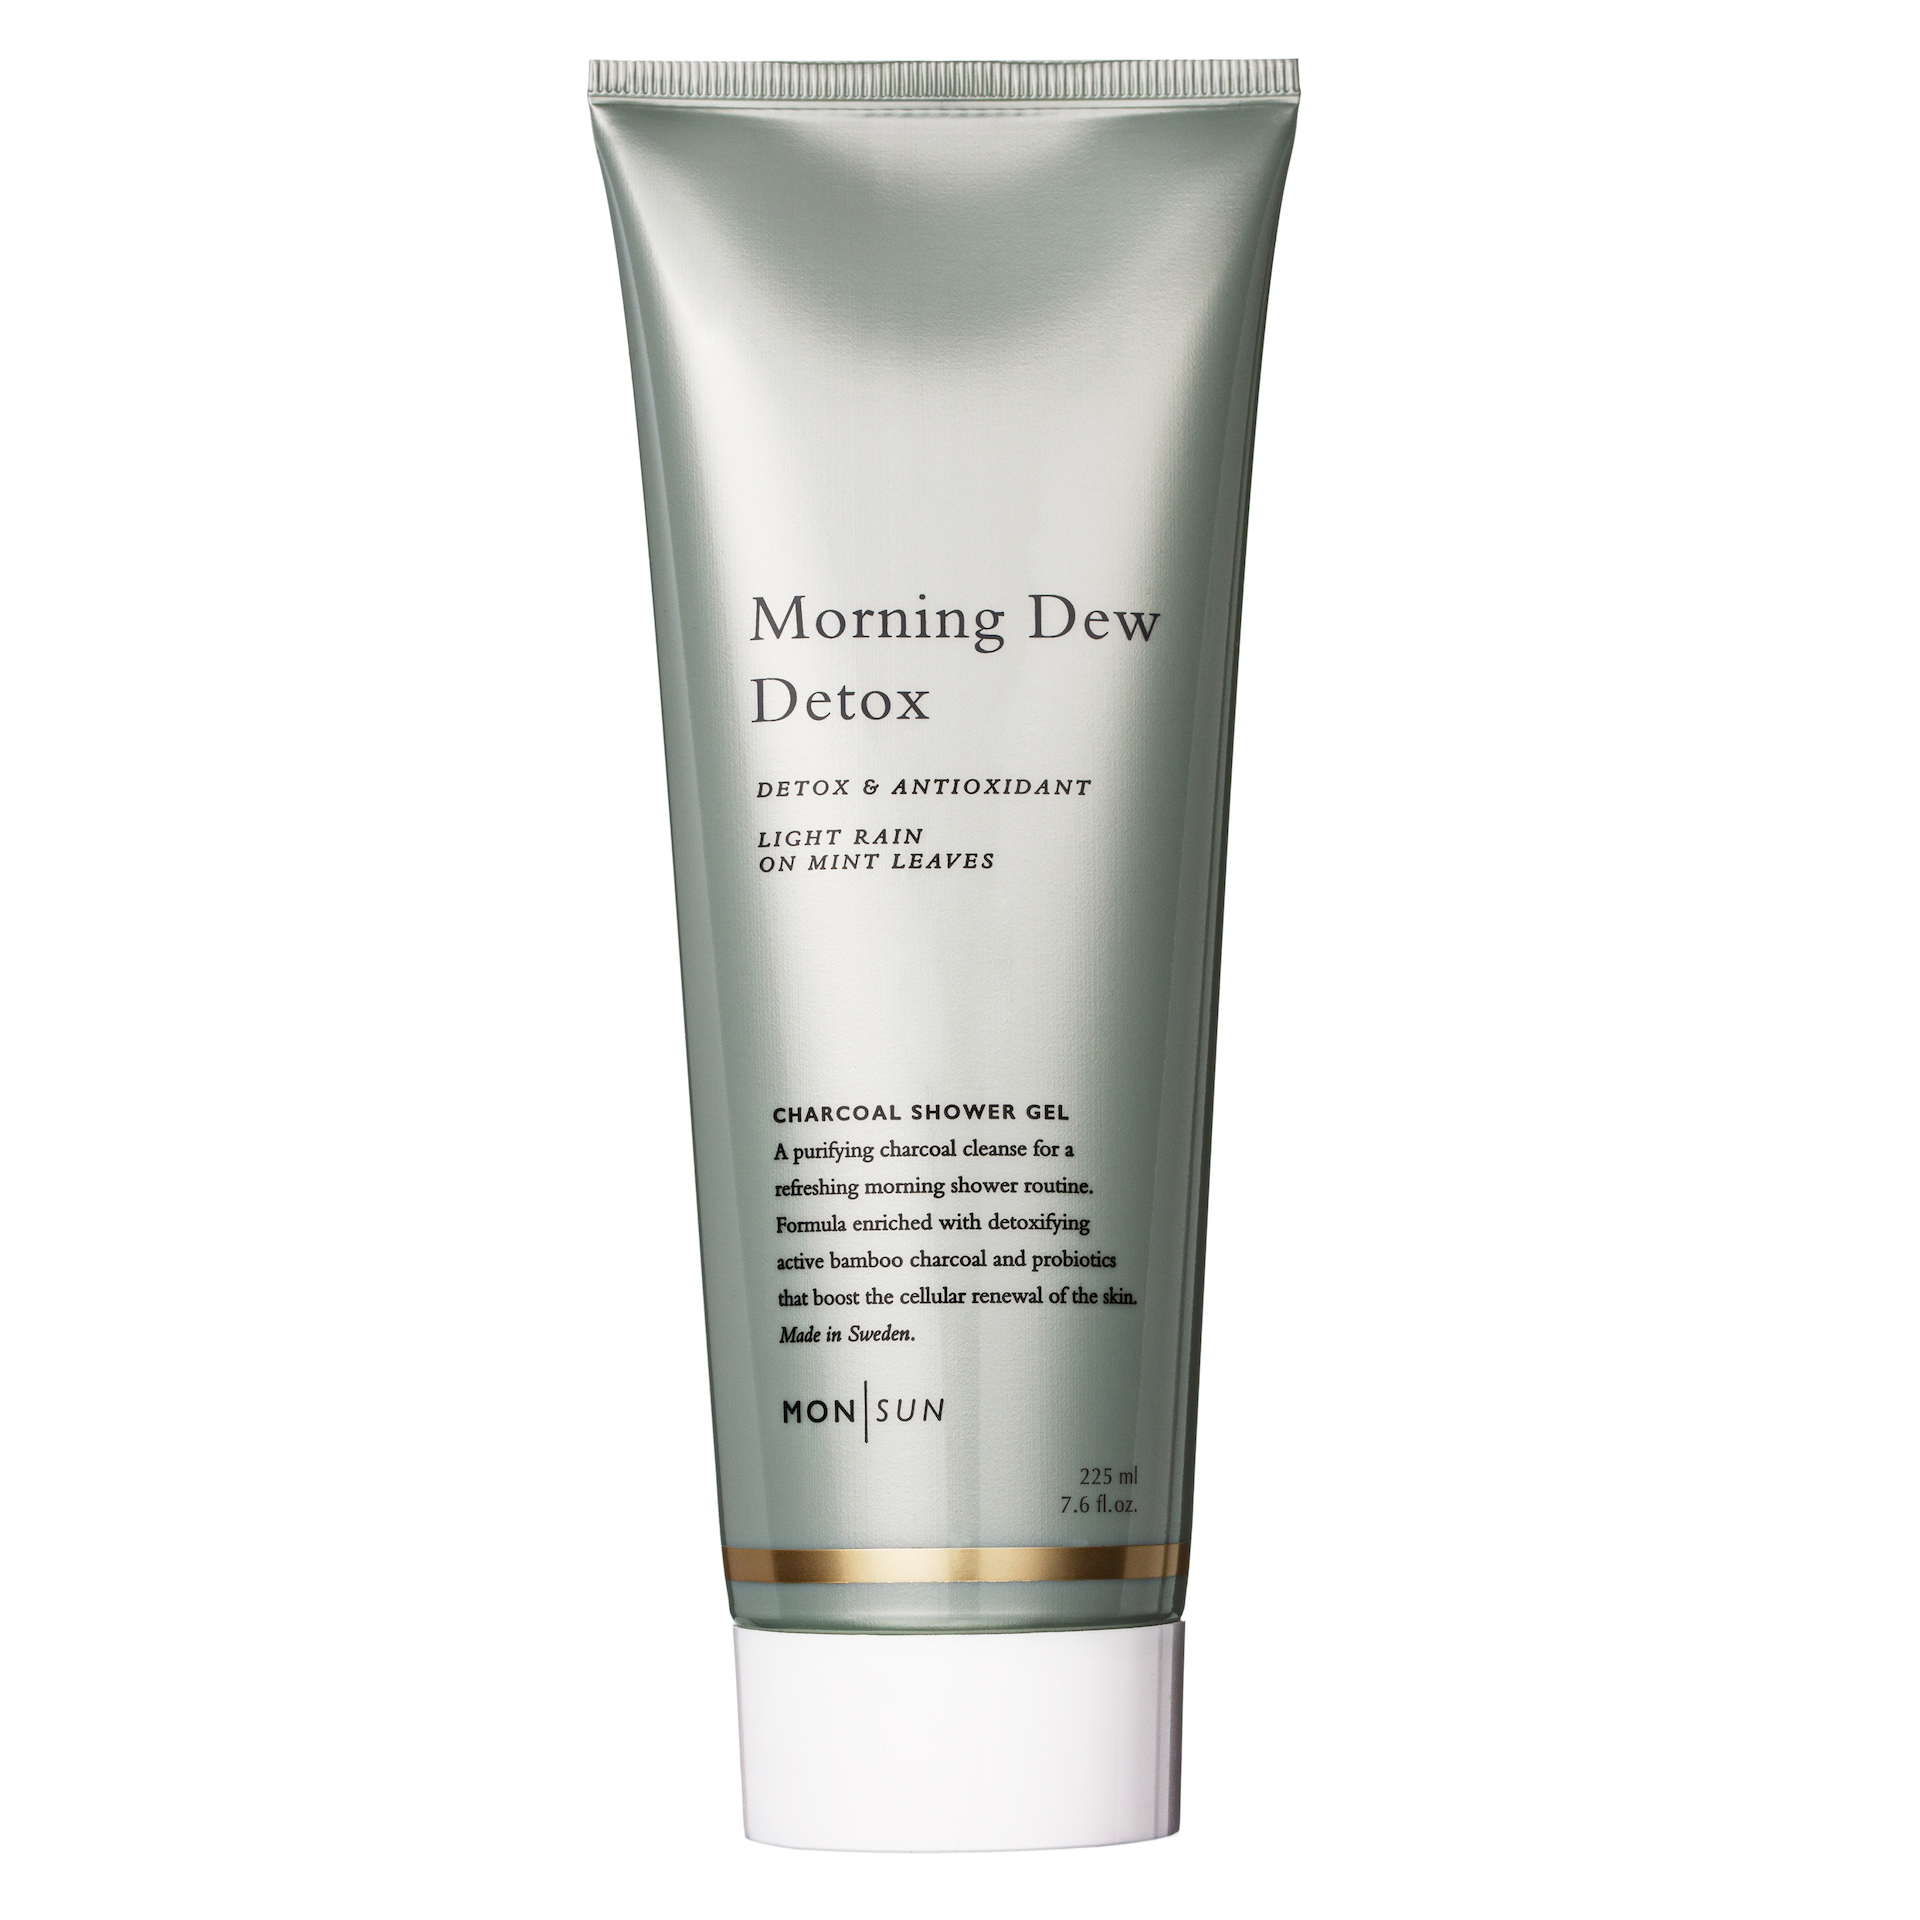 MON SUN Morning Dew Detox Detox & Antioxidant Shower gel